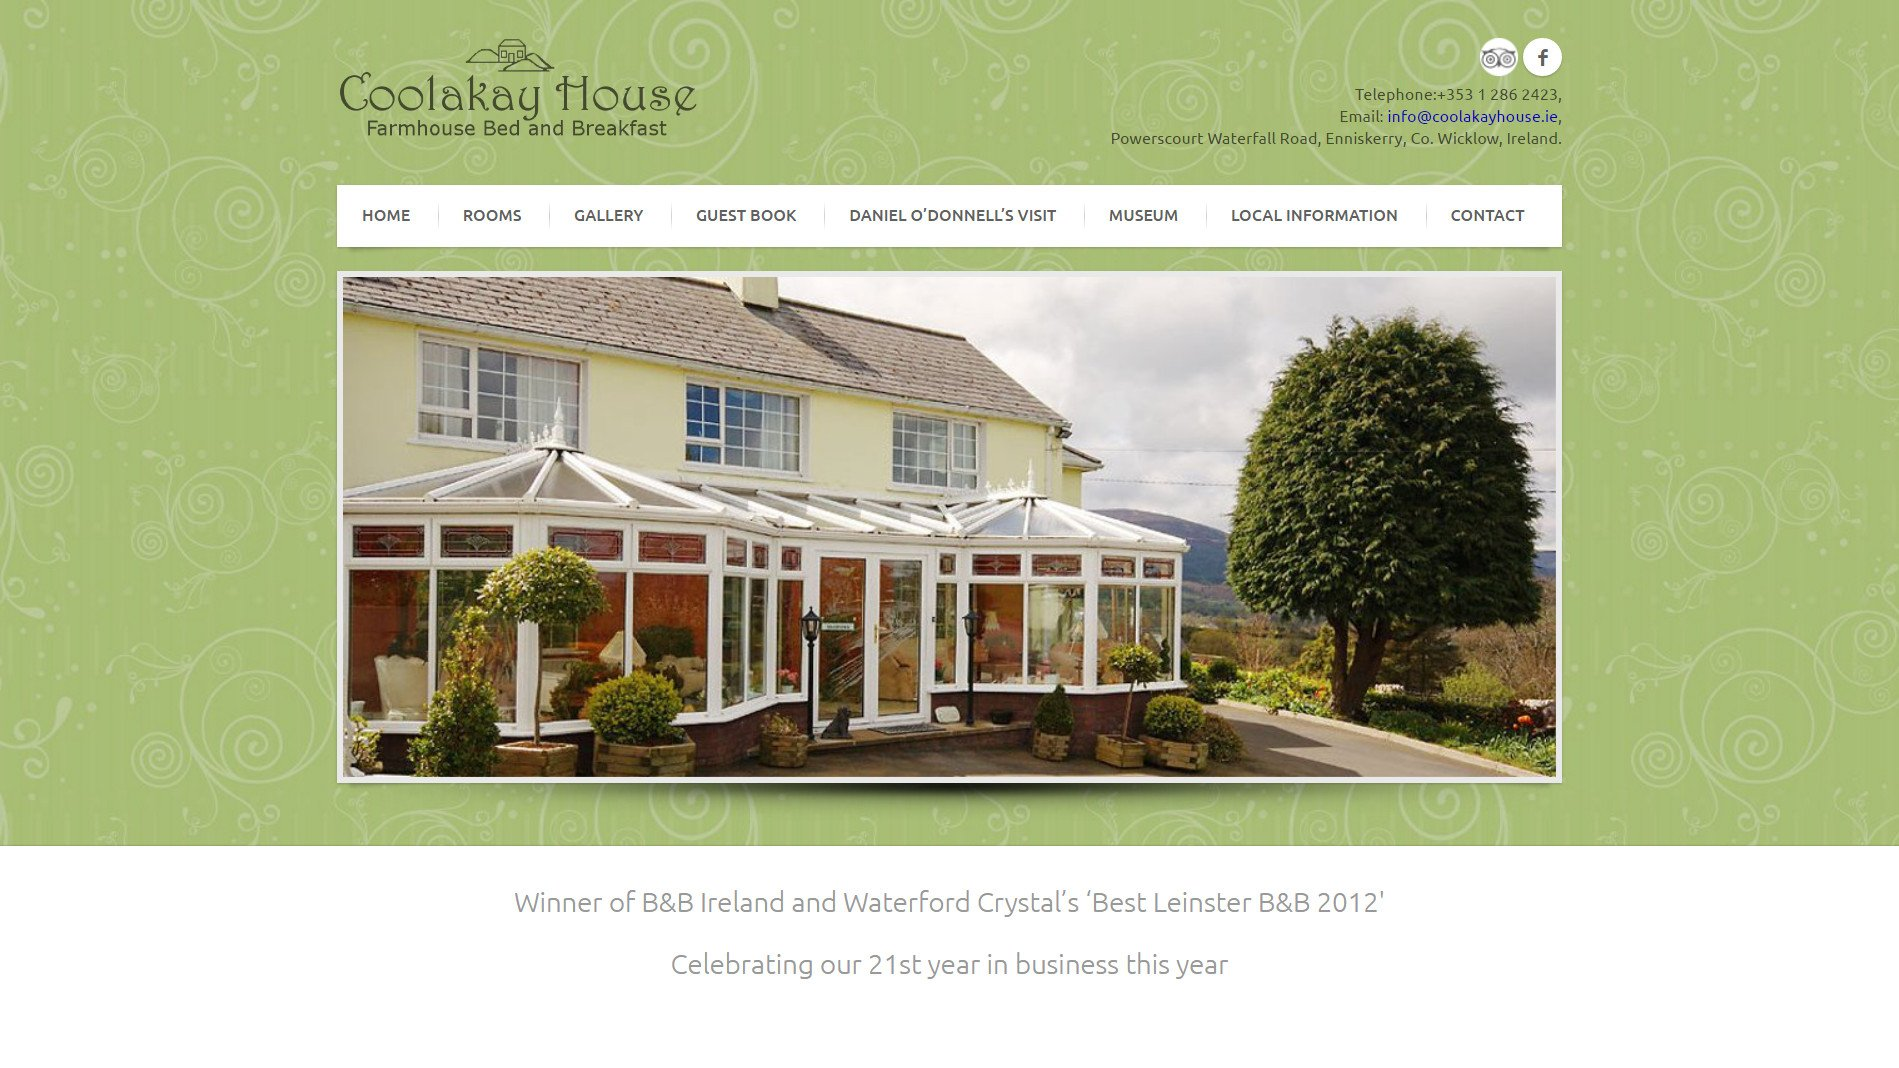 Website design for Coolakay House designed by Ridge Design home page visual used as featured image